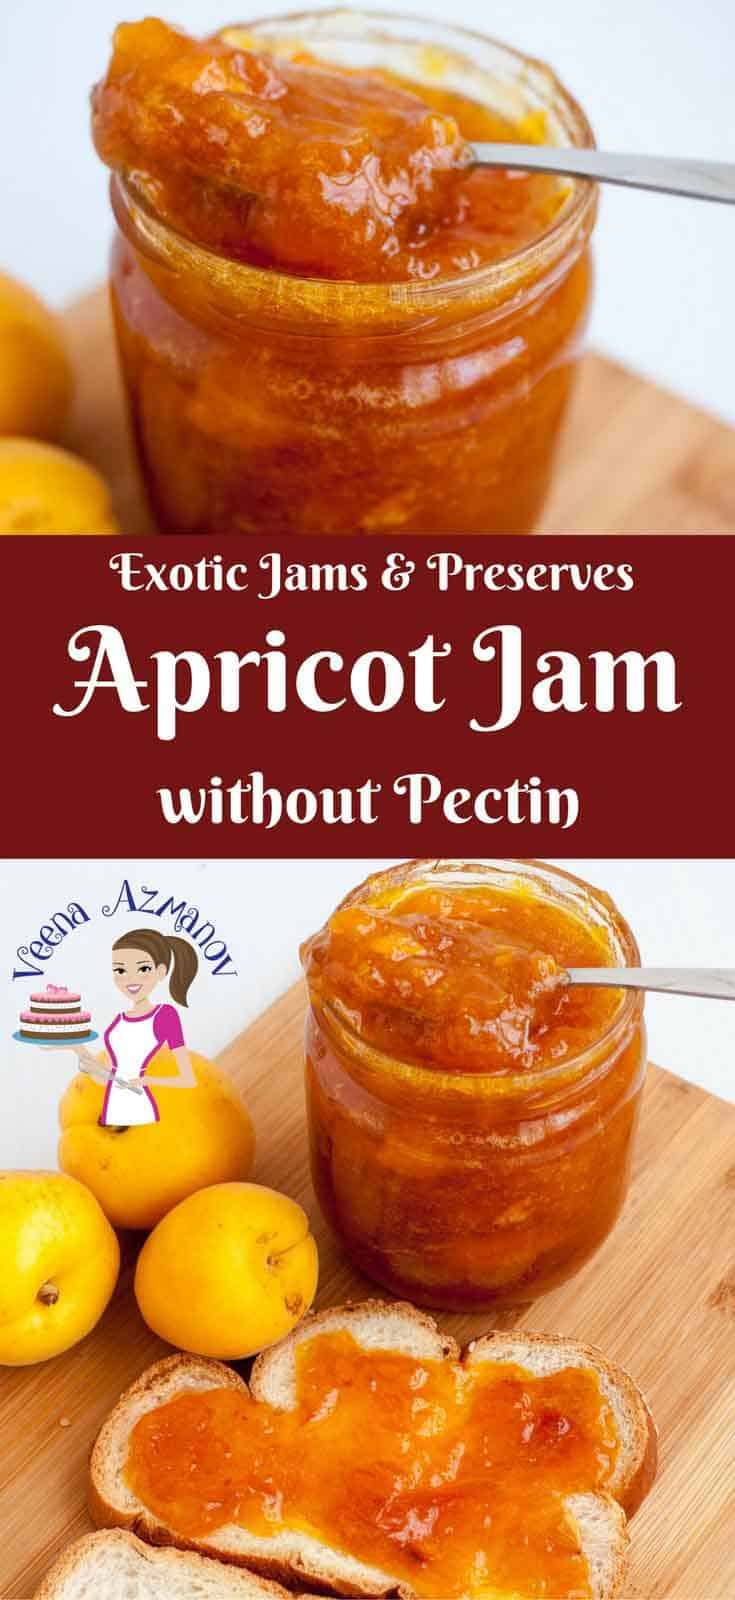 Nothing beats a homemade jam made with fresh stone fruits in season. This homemade apricot jam is made without using any pectin. All it needs are some delicious fresh apricots, sugar, squeeze of lemon and a slow simmer. The result is a delicious apricot jam you can't stop eating. via veenaazmanov.com